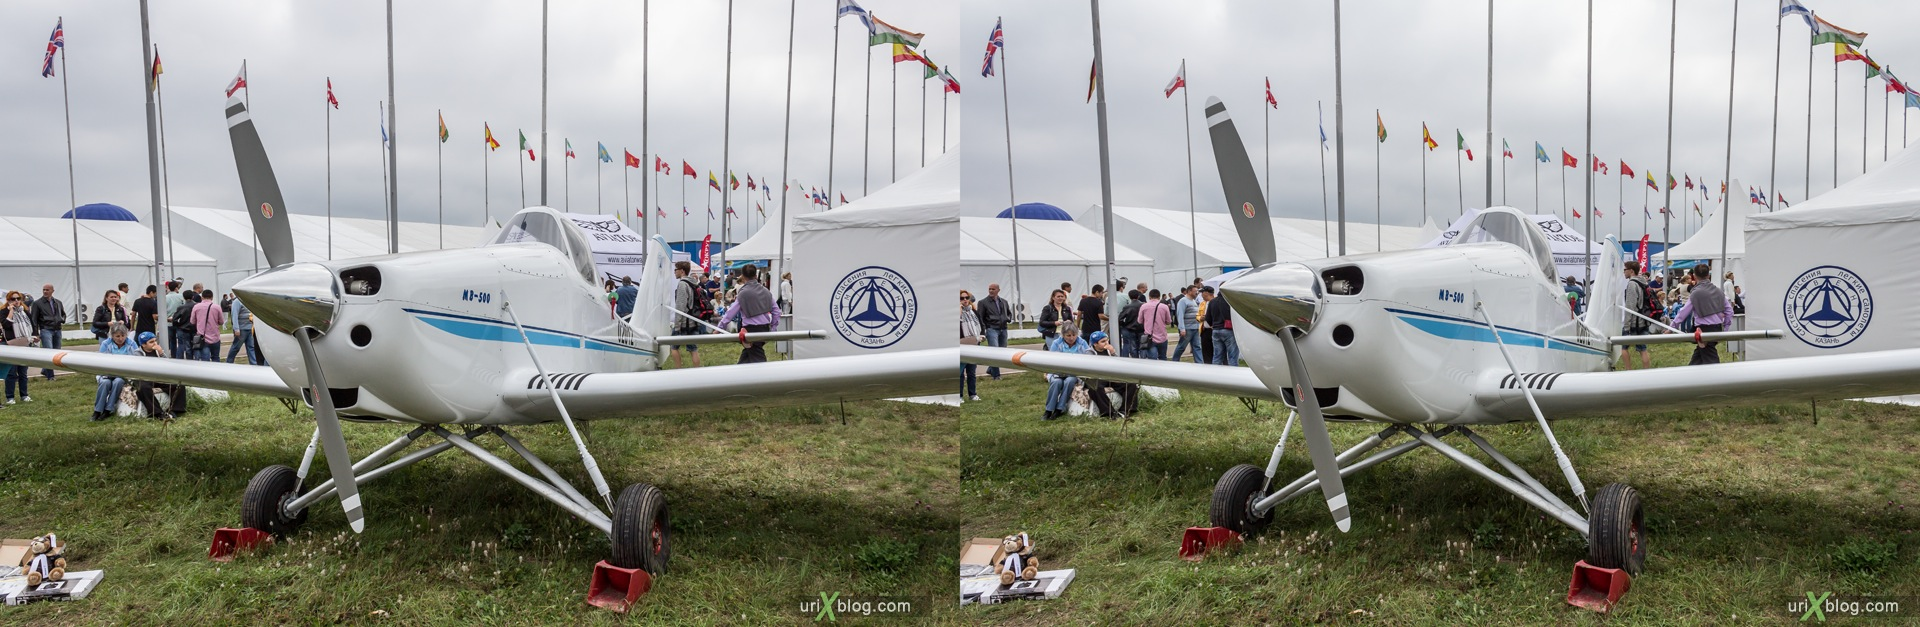 2013, MVEN-500, MAKS, International Aviation and Space Salon, Russia, Ramenskoye airfield, airplane, 3D, stereo pair, cross-eyed, crossview, cross view stereo pair, stereoscopic